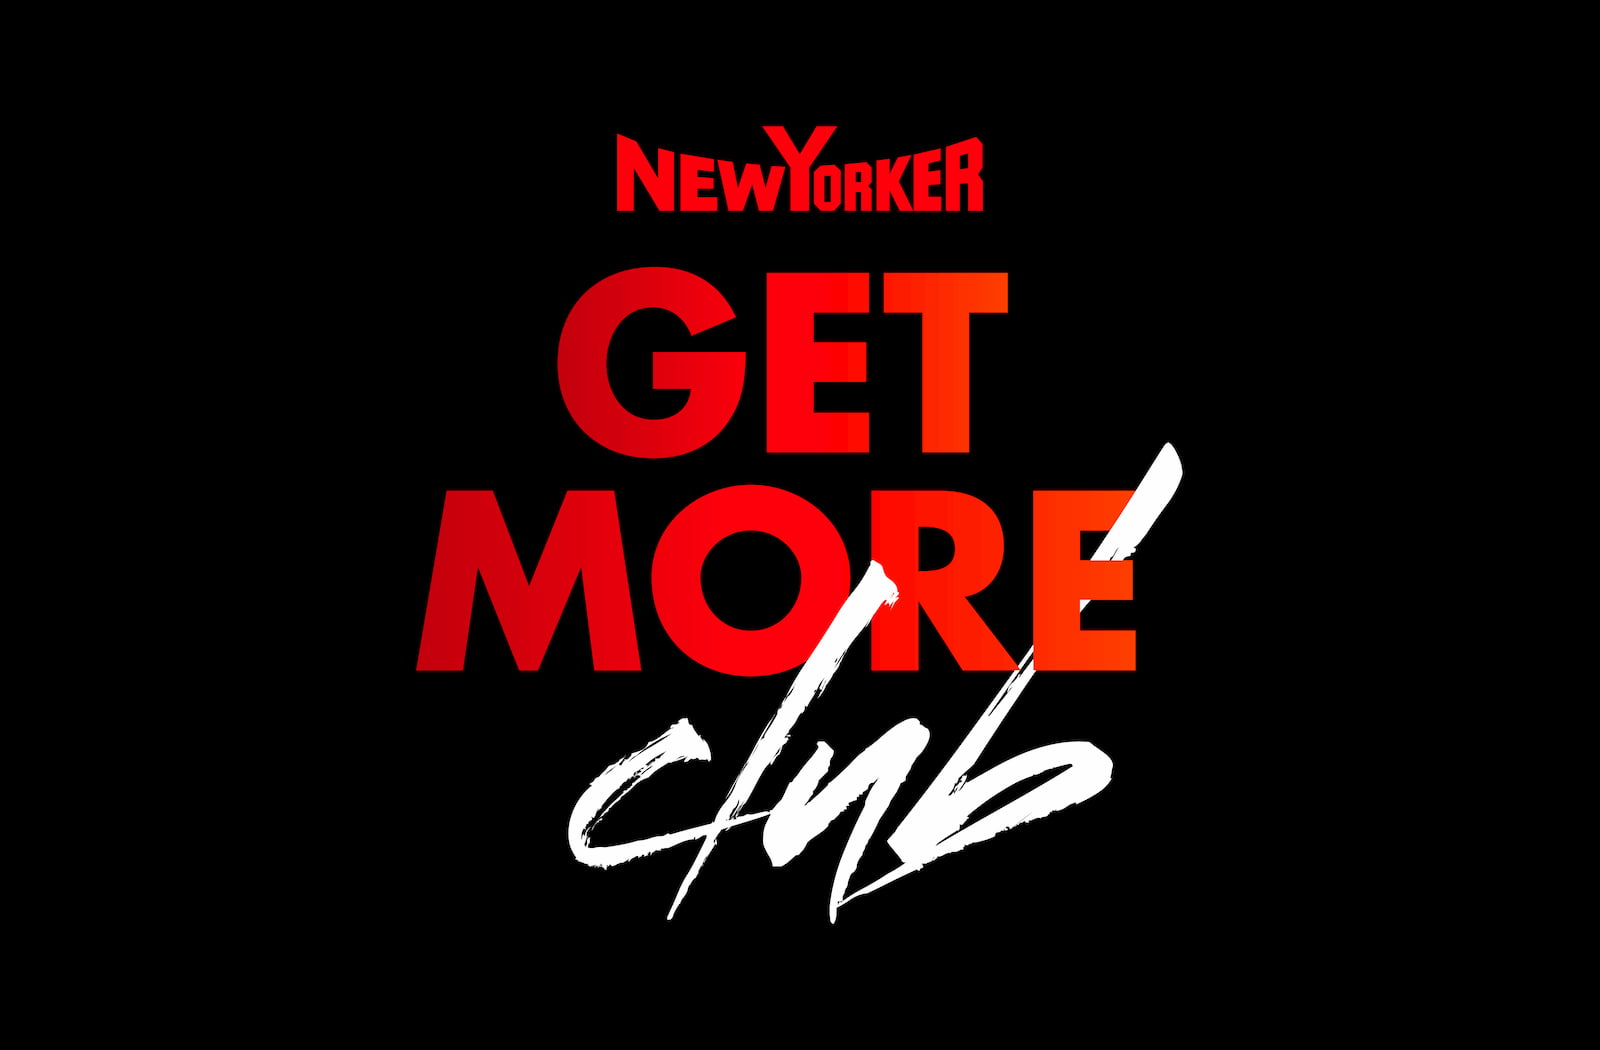 Go to GET MORE club